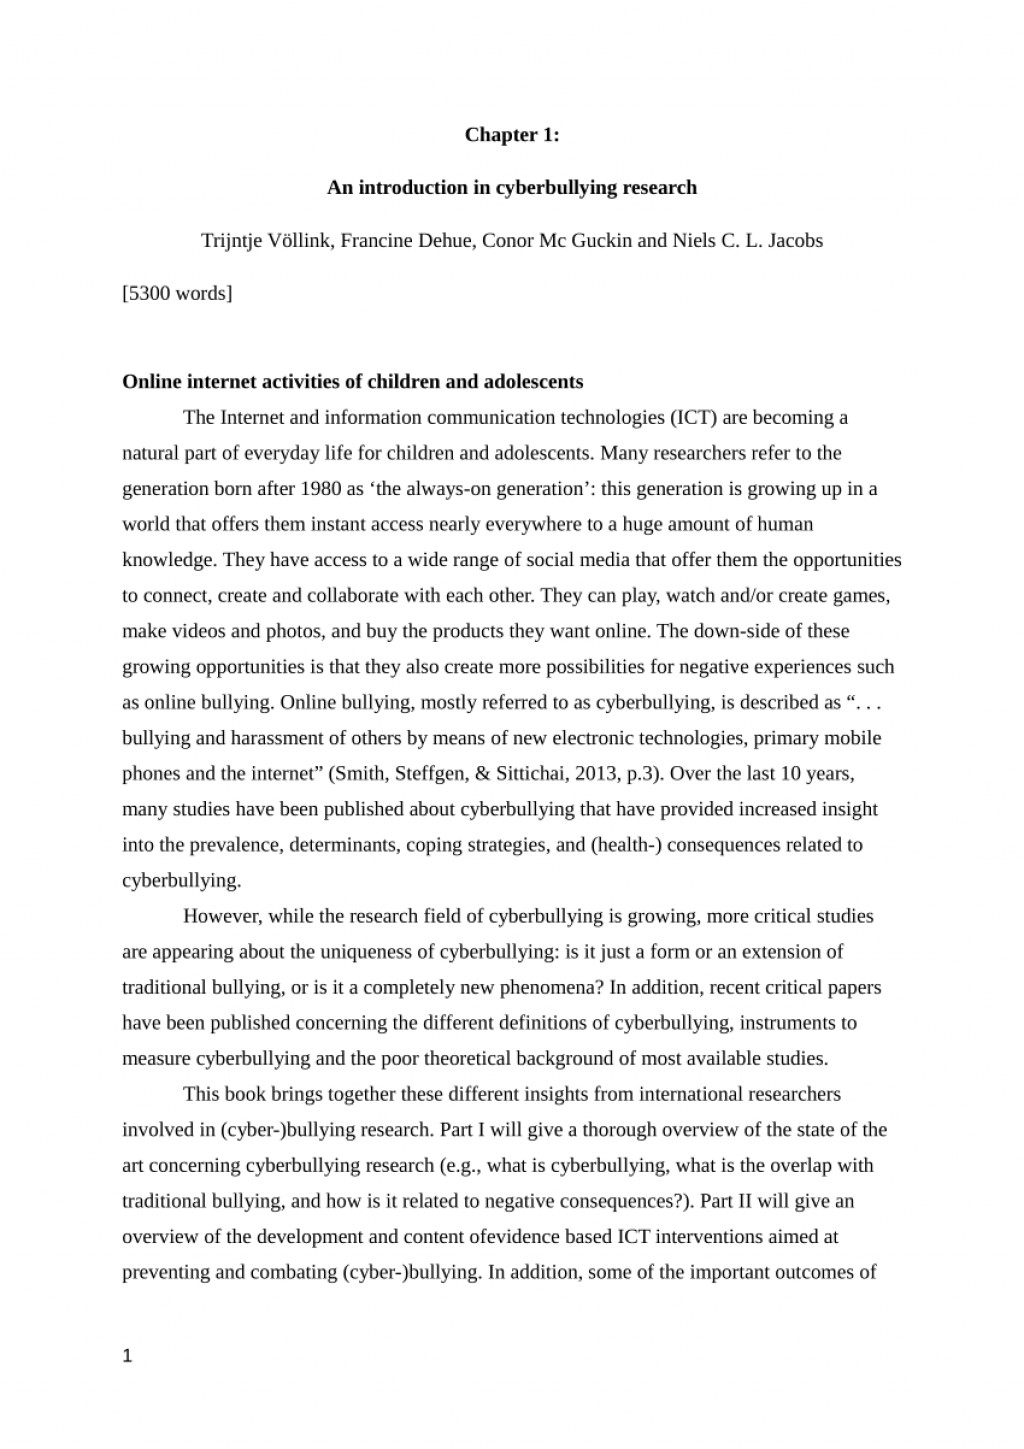 001 Largepreview Research Paper Cyberbullying Remarkable Papers Effects Of Pdf Introduction Abstract About Large